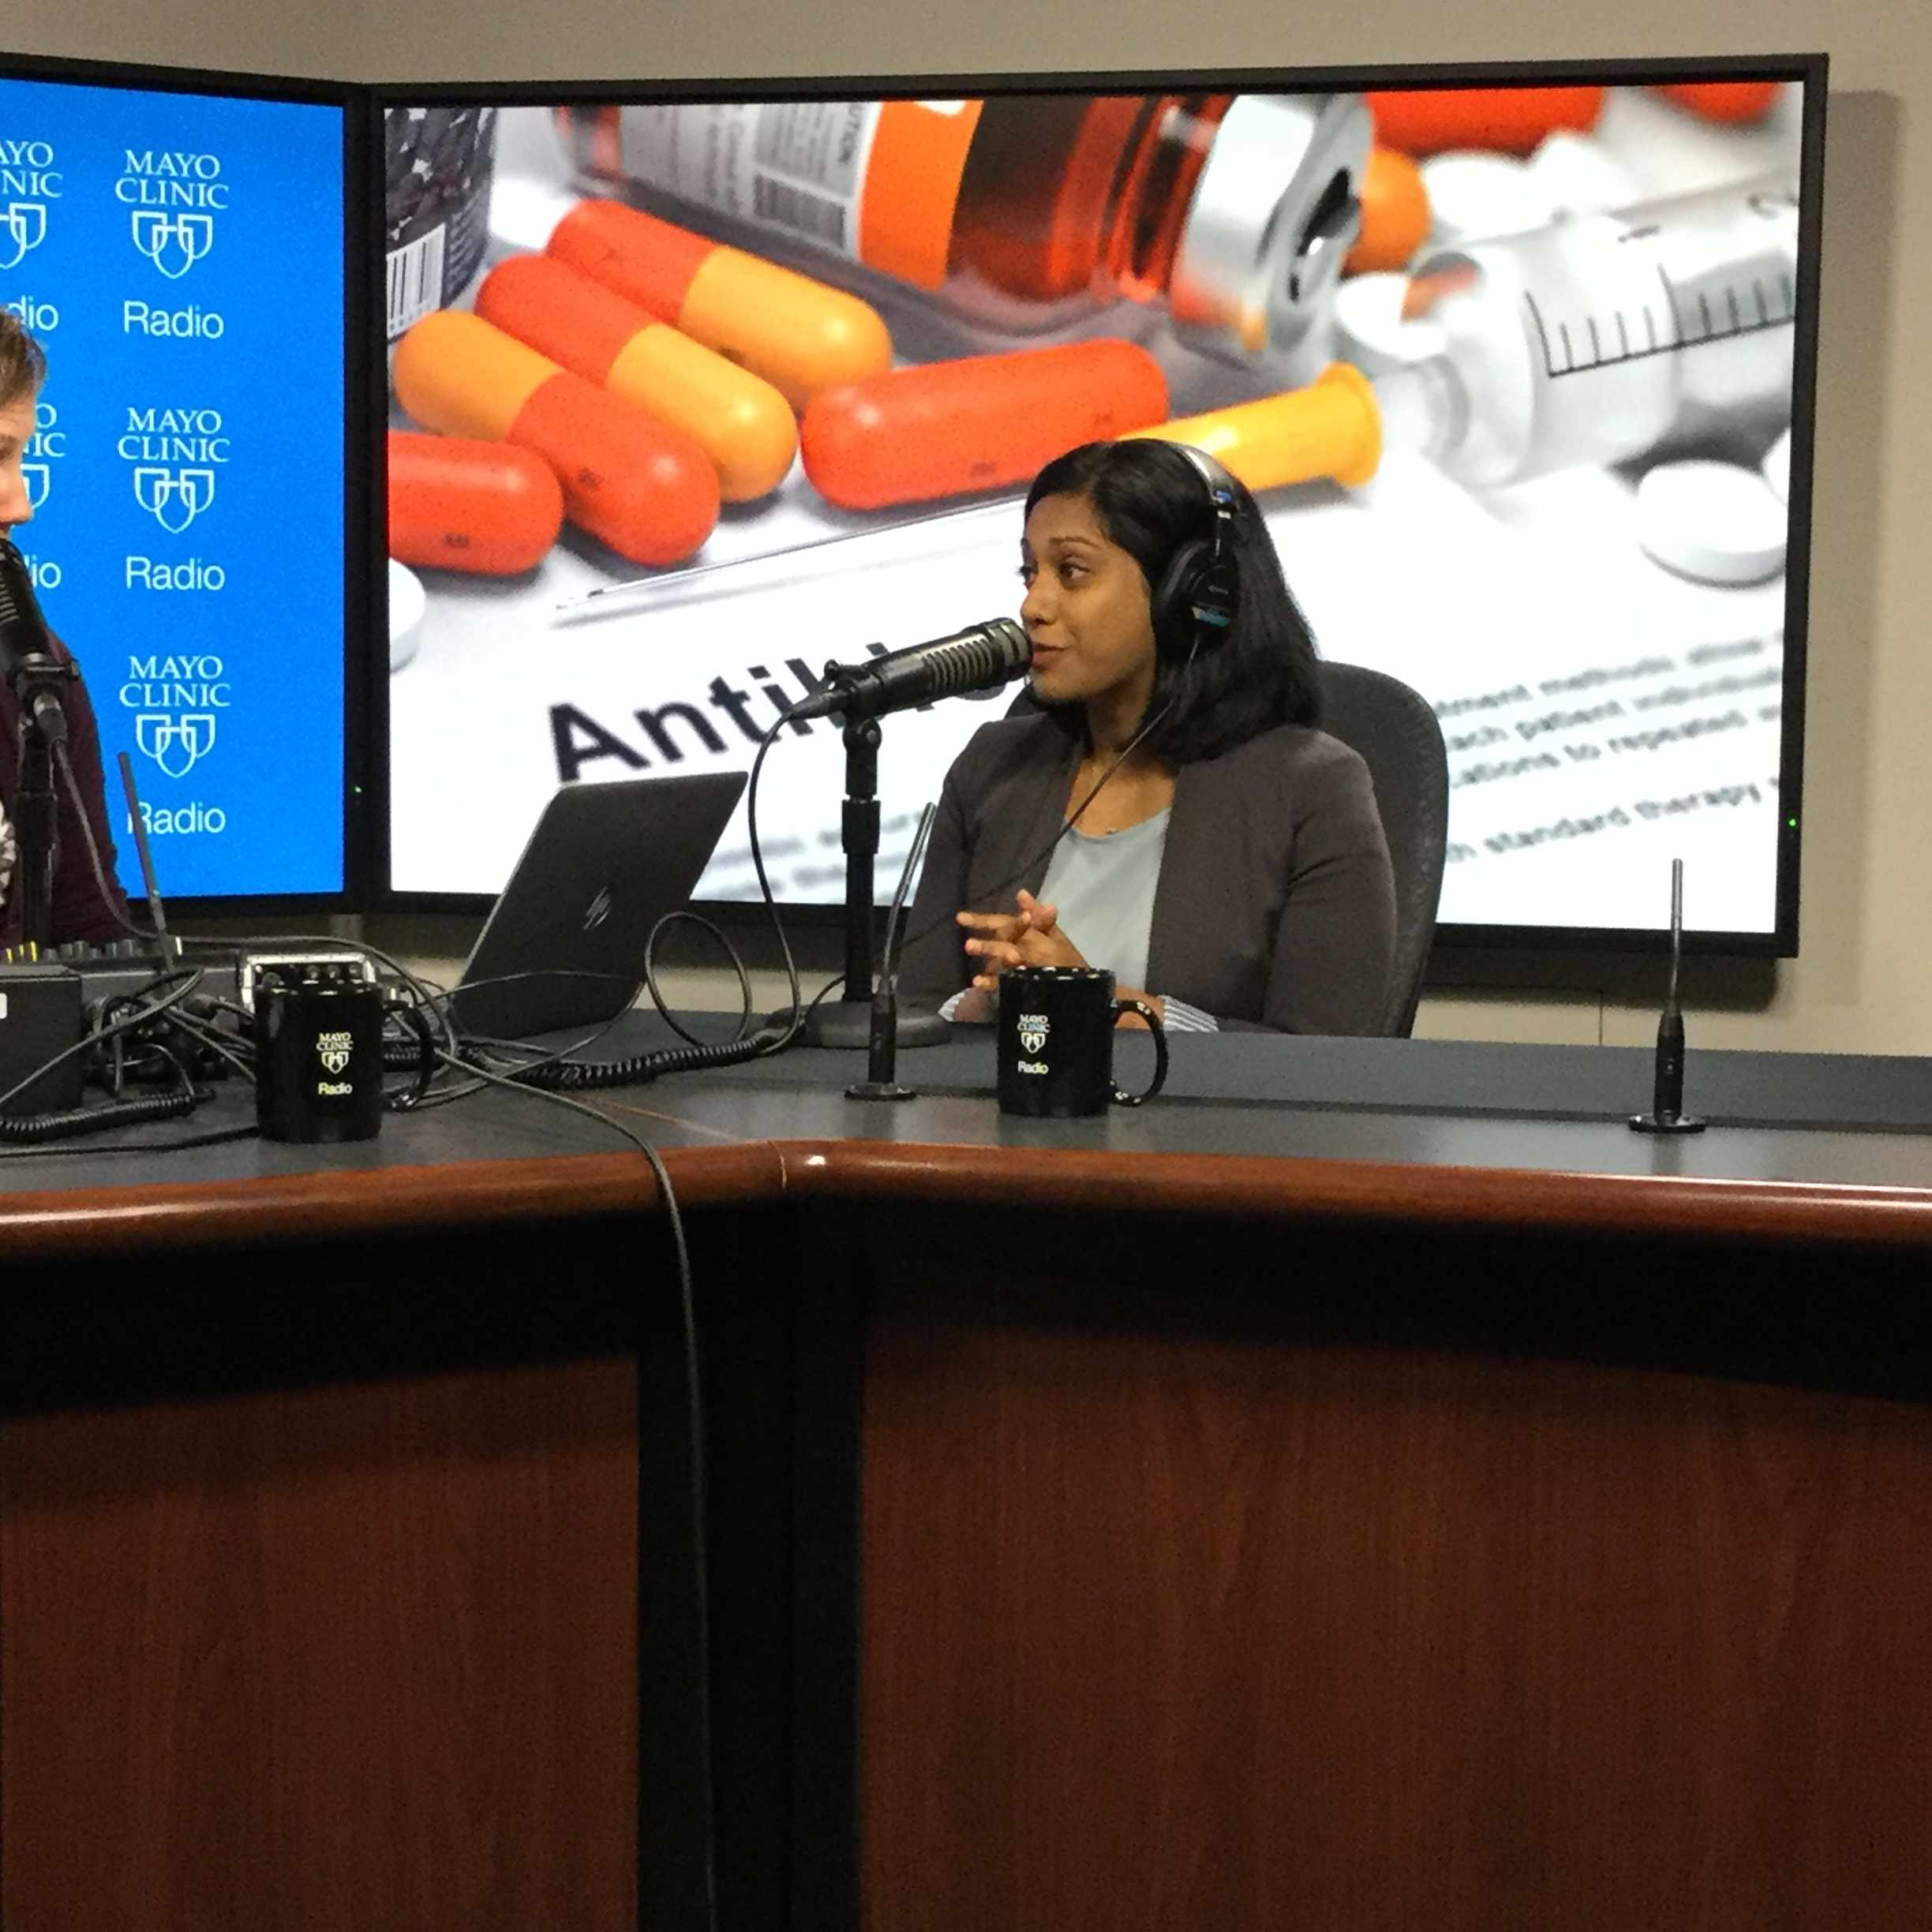 Dr. Nipunie Rajapakse being interviewed on Mayo Clinic Radio